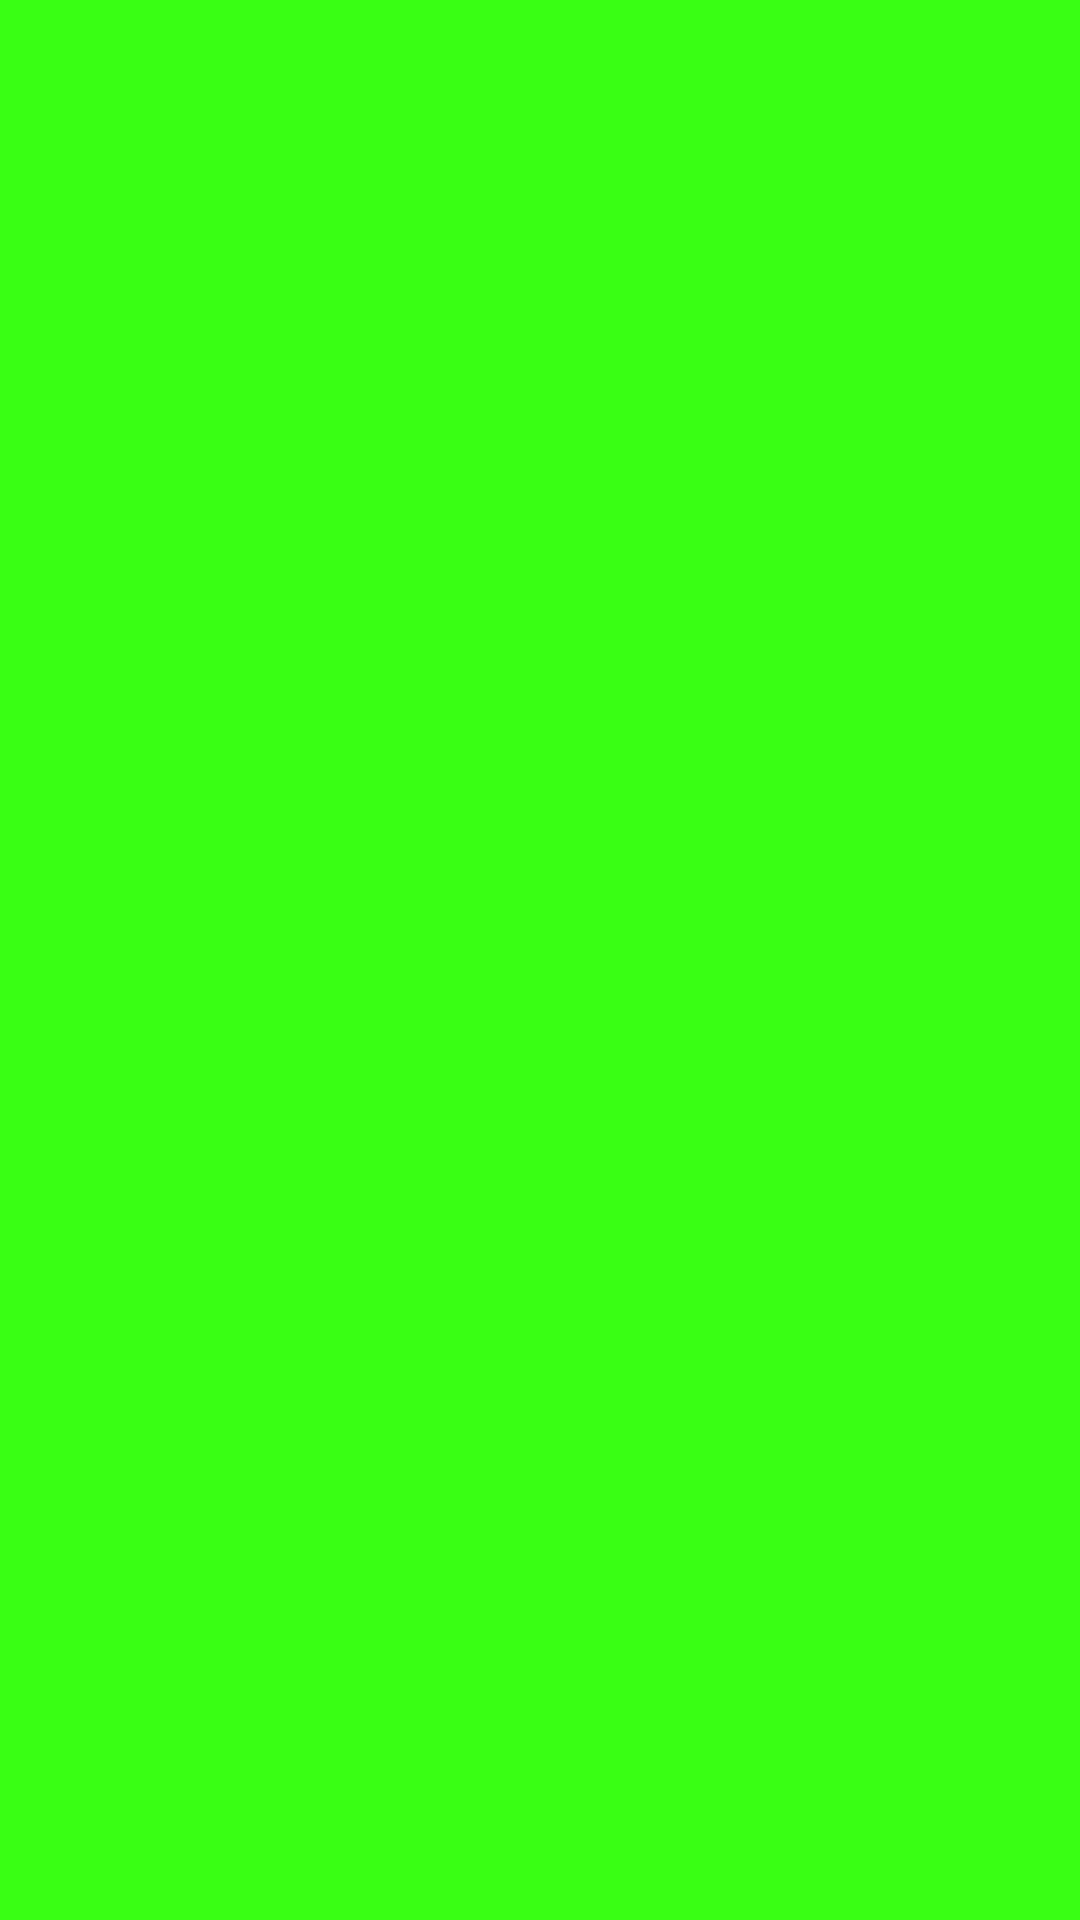 http://wallpaperformobile/13944/neon-green-wallpaper.html - neon